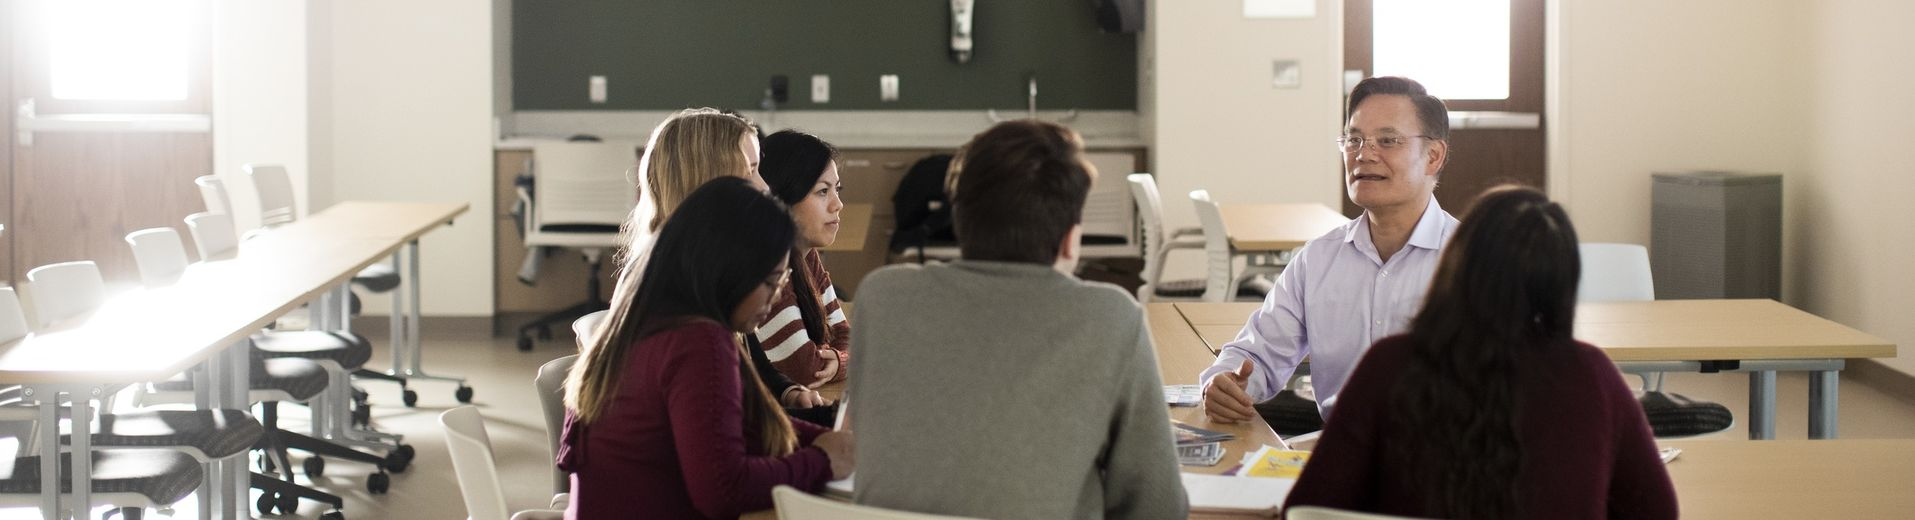 A group of students talking to a professor at a table in a classroom